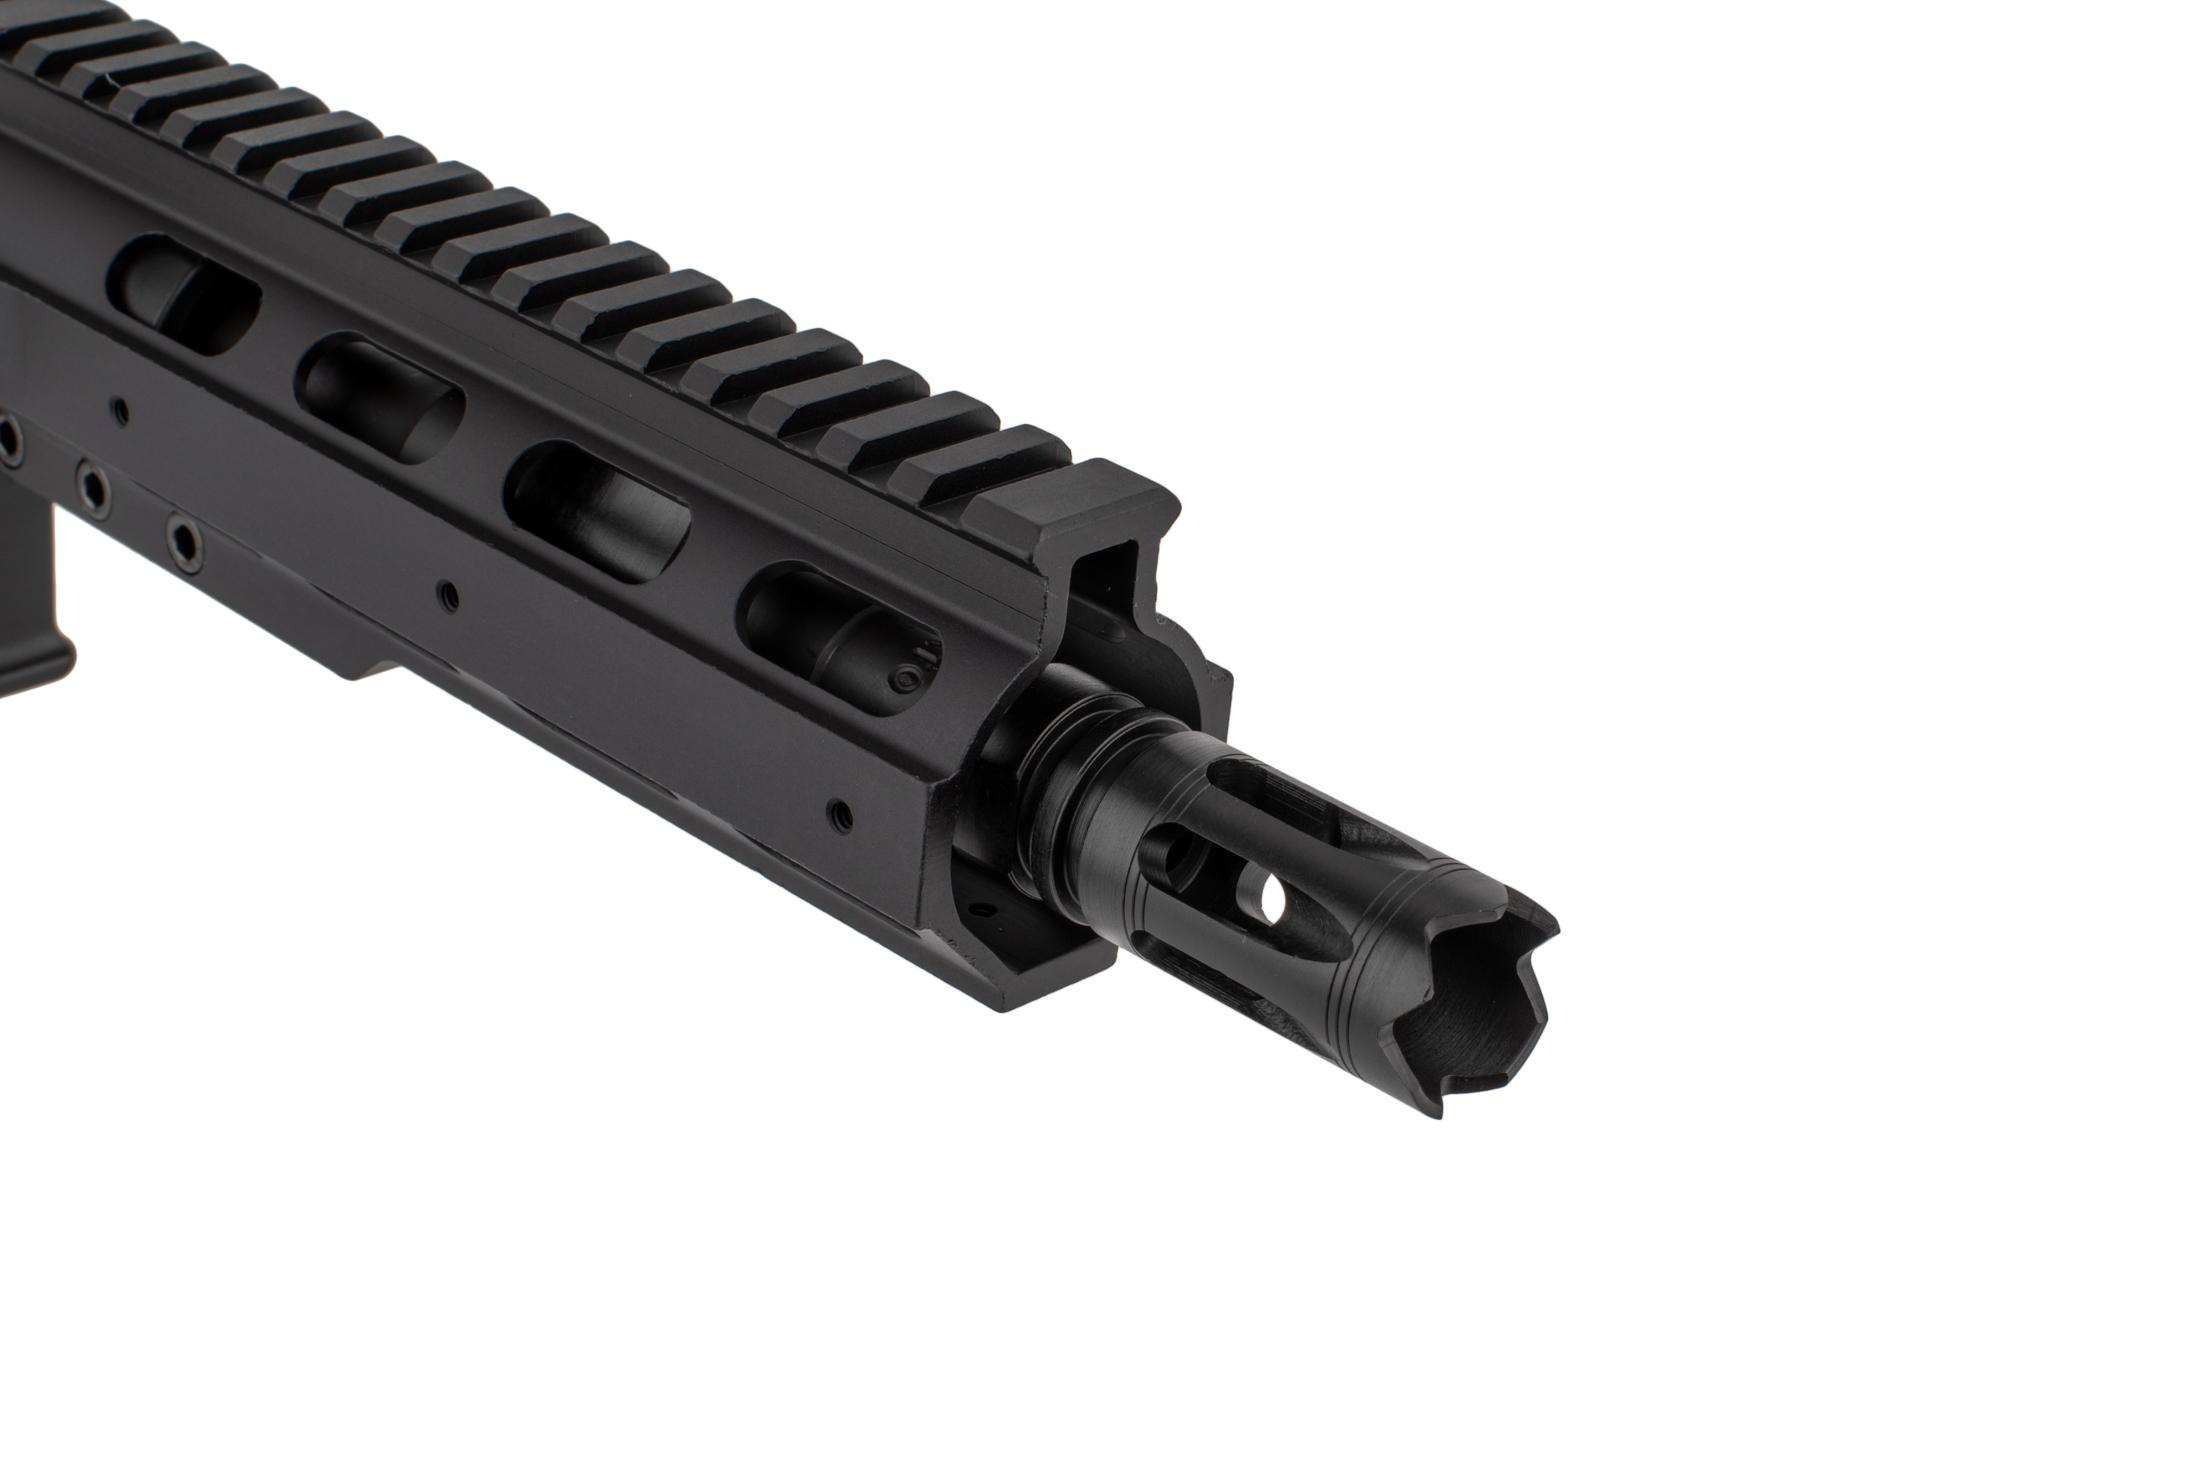 "Anderson Manufacturing 7.5 5.56 NATO 1:7 M4 Pistol - 7.28"" EXT Freefloat Rail"